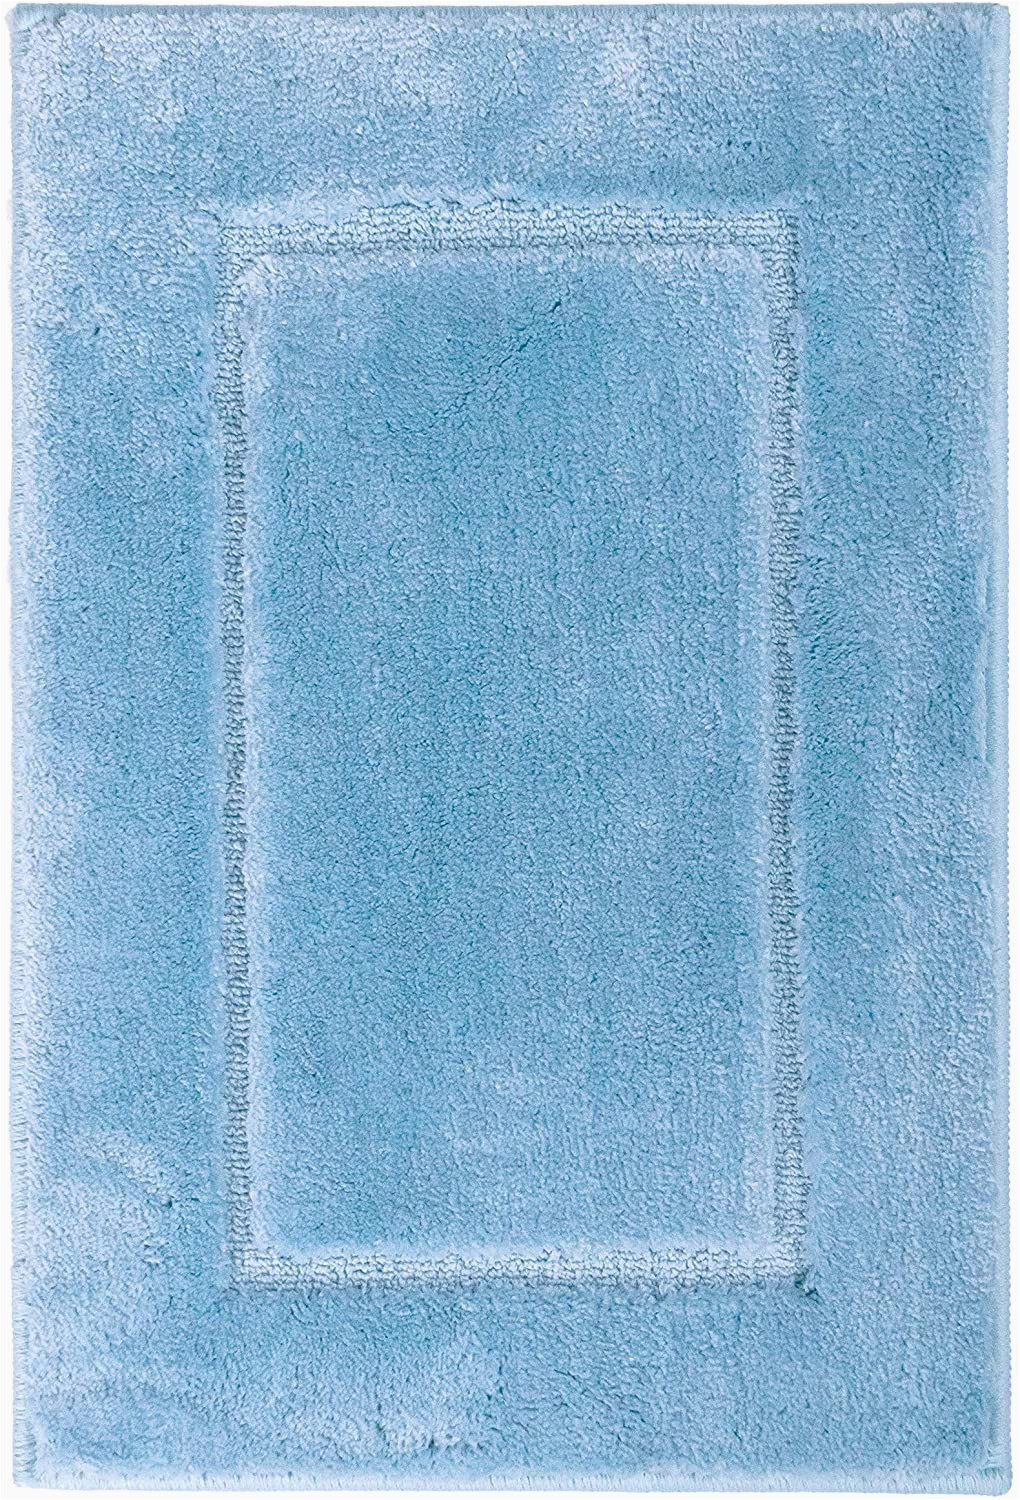 40 X 60 Bath Rug Ridder Bath Rug Bathroom Carpet Polyester Light Blue